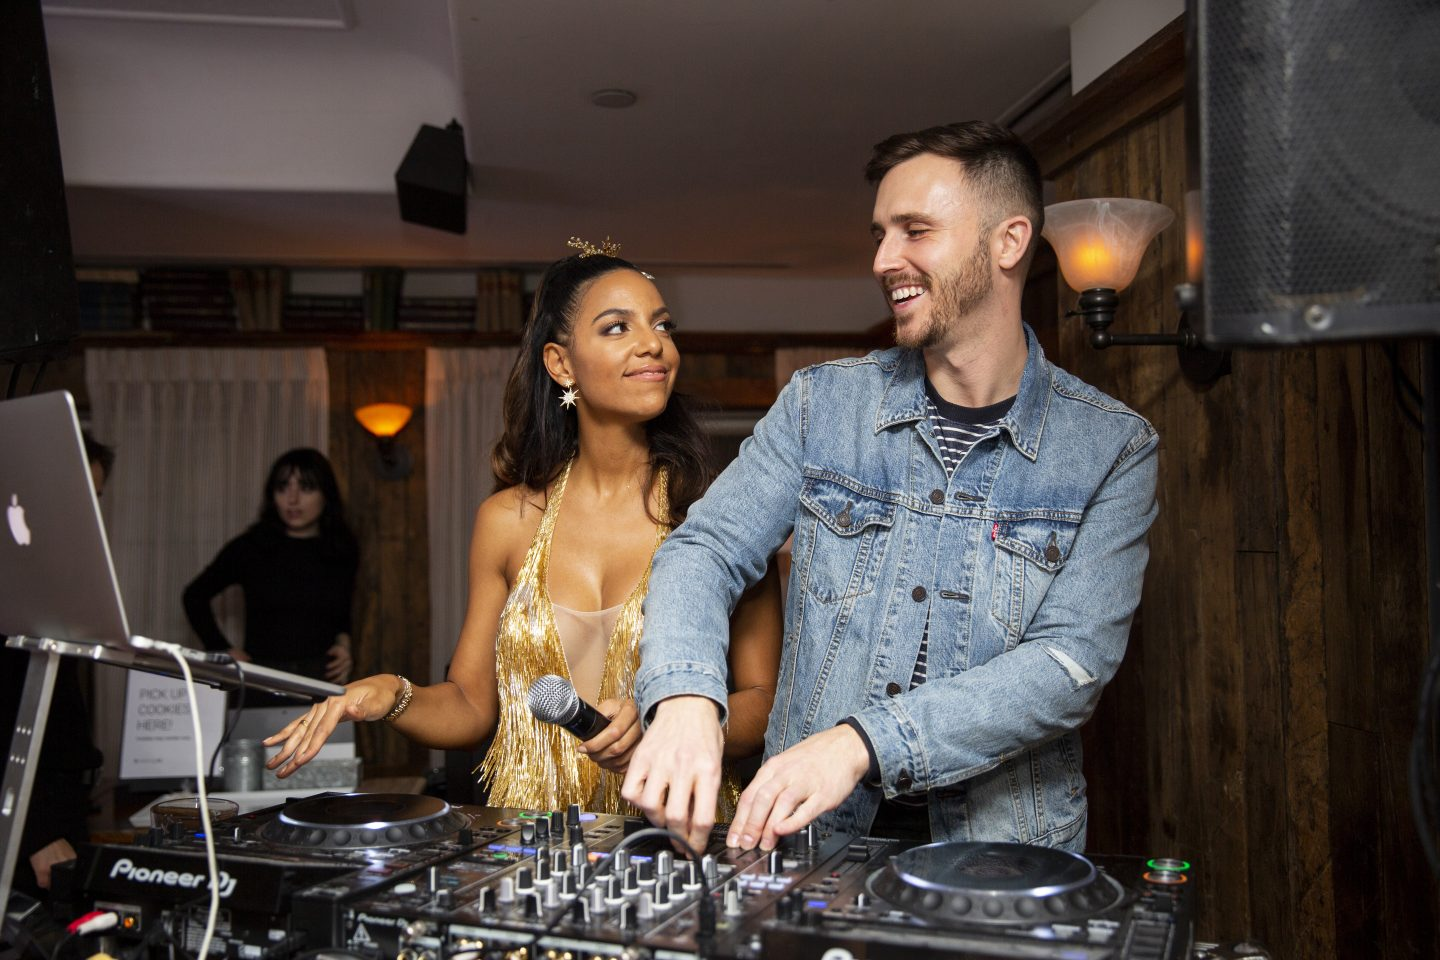 Conor Cutz djs an event at soho house